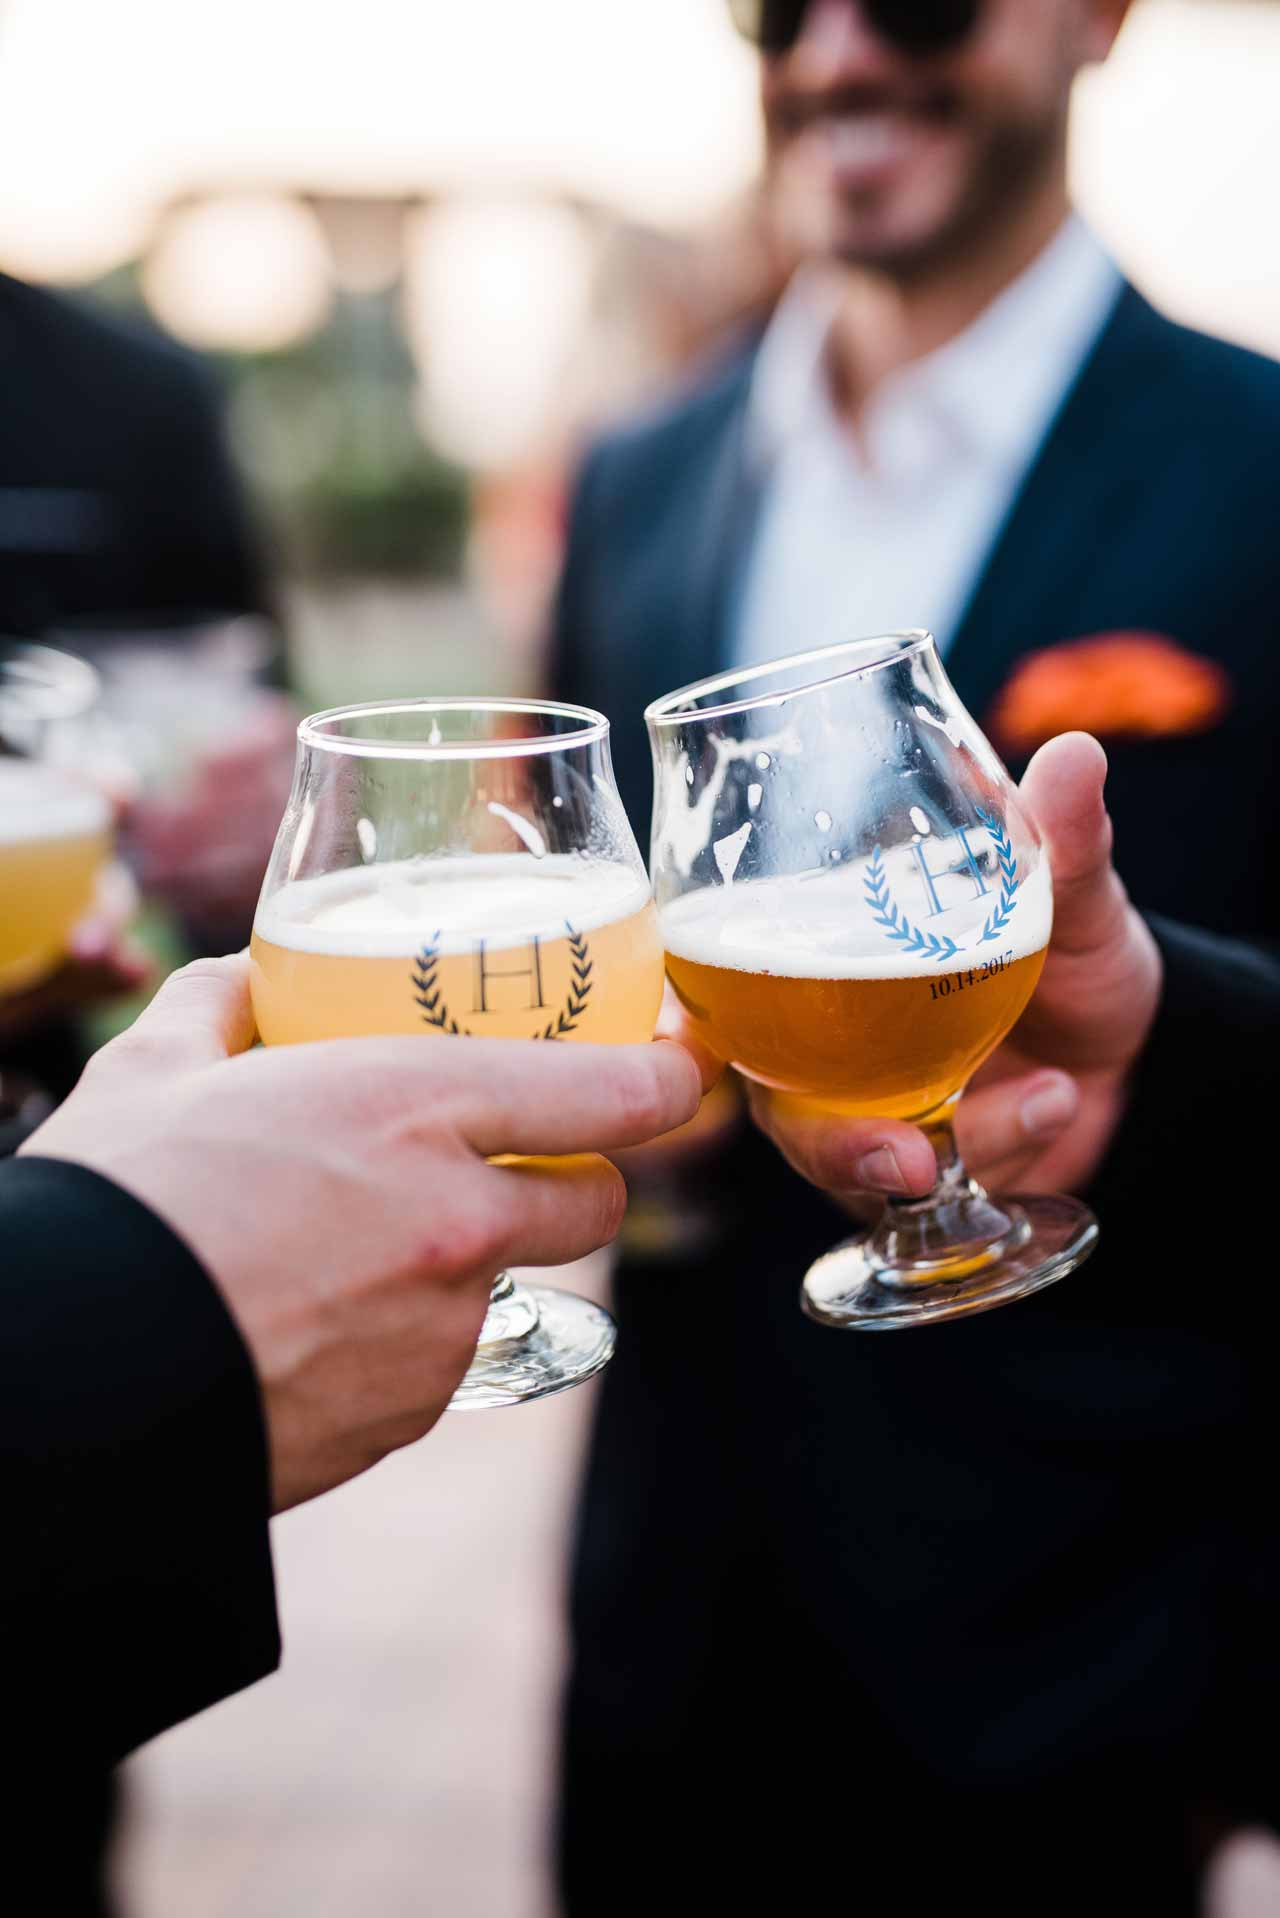 Two groomsmen raising a pint and toasting with custom beer glasses at a wedding